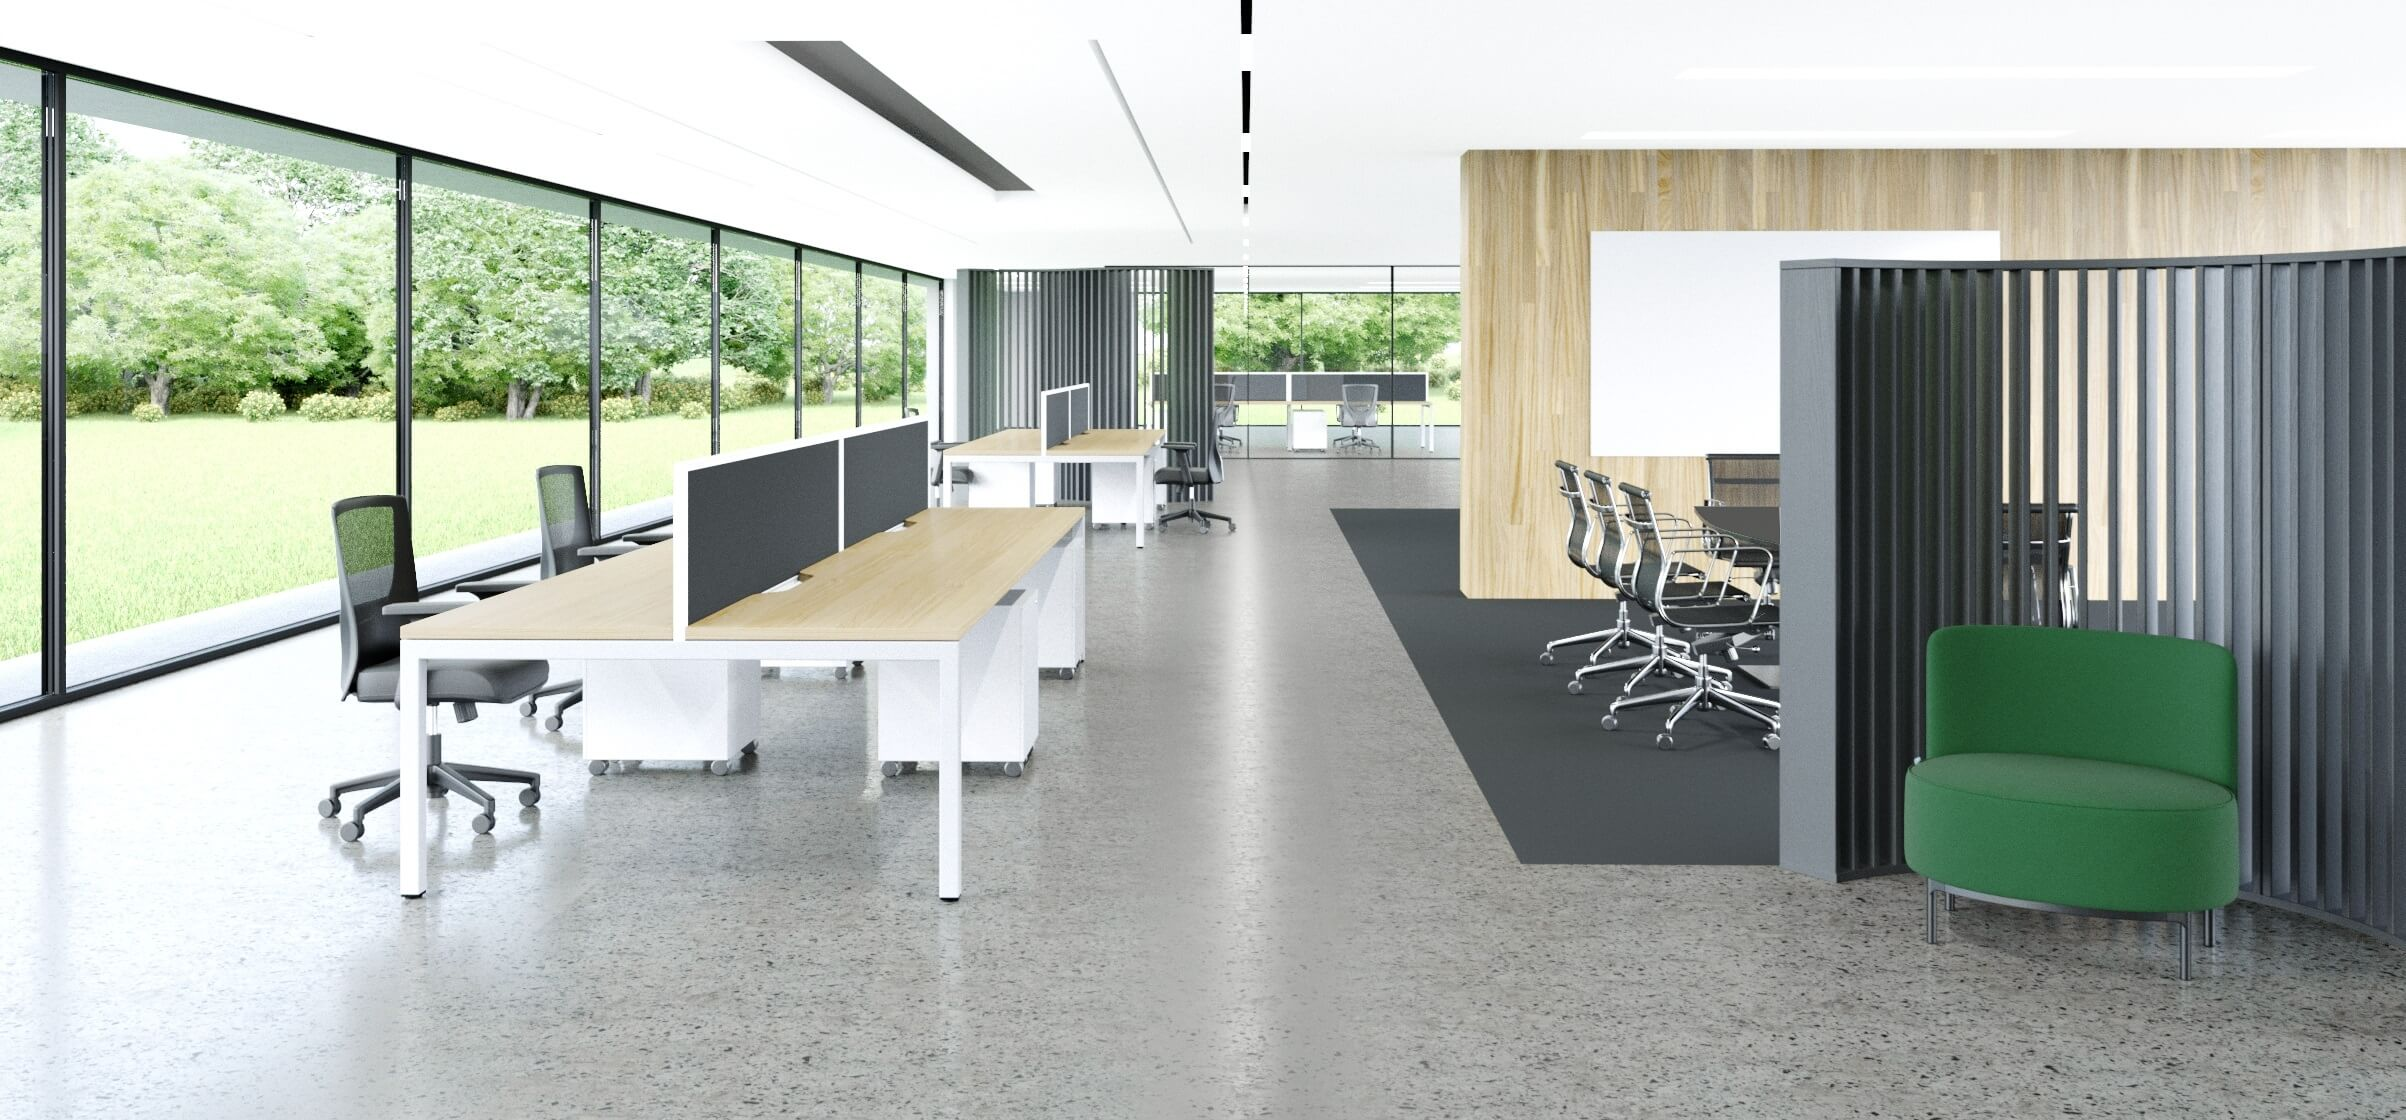 Cube Desk Clusters With Fabric Screens